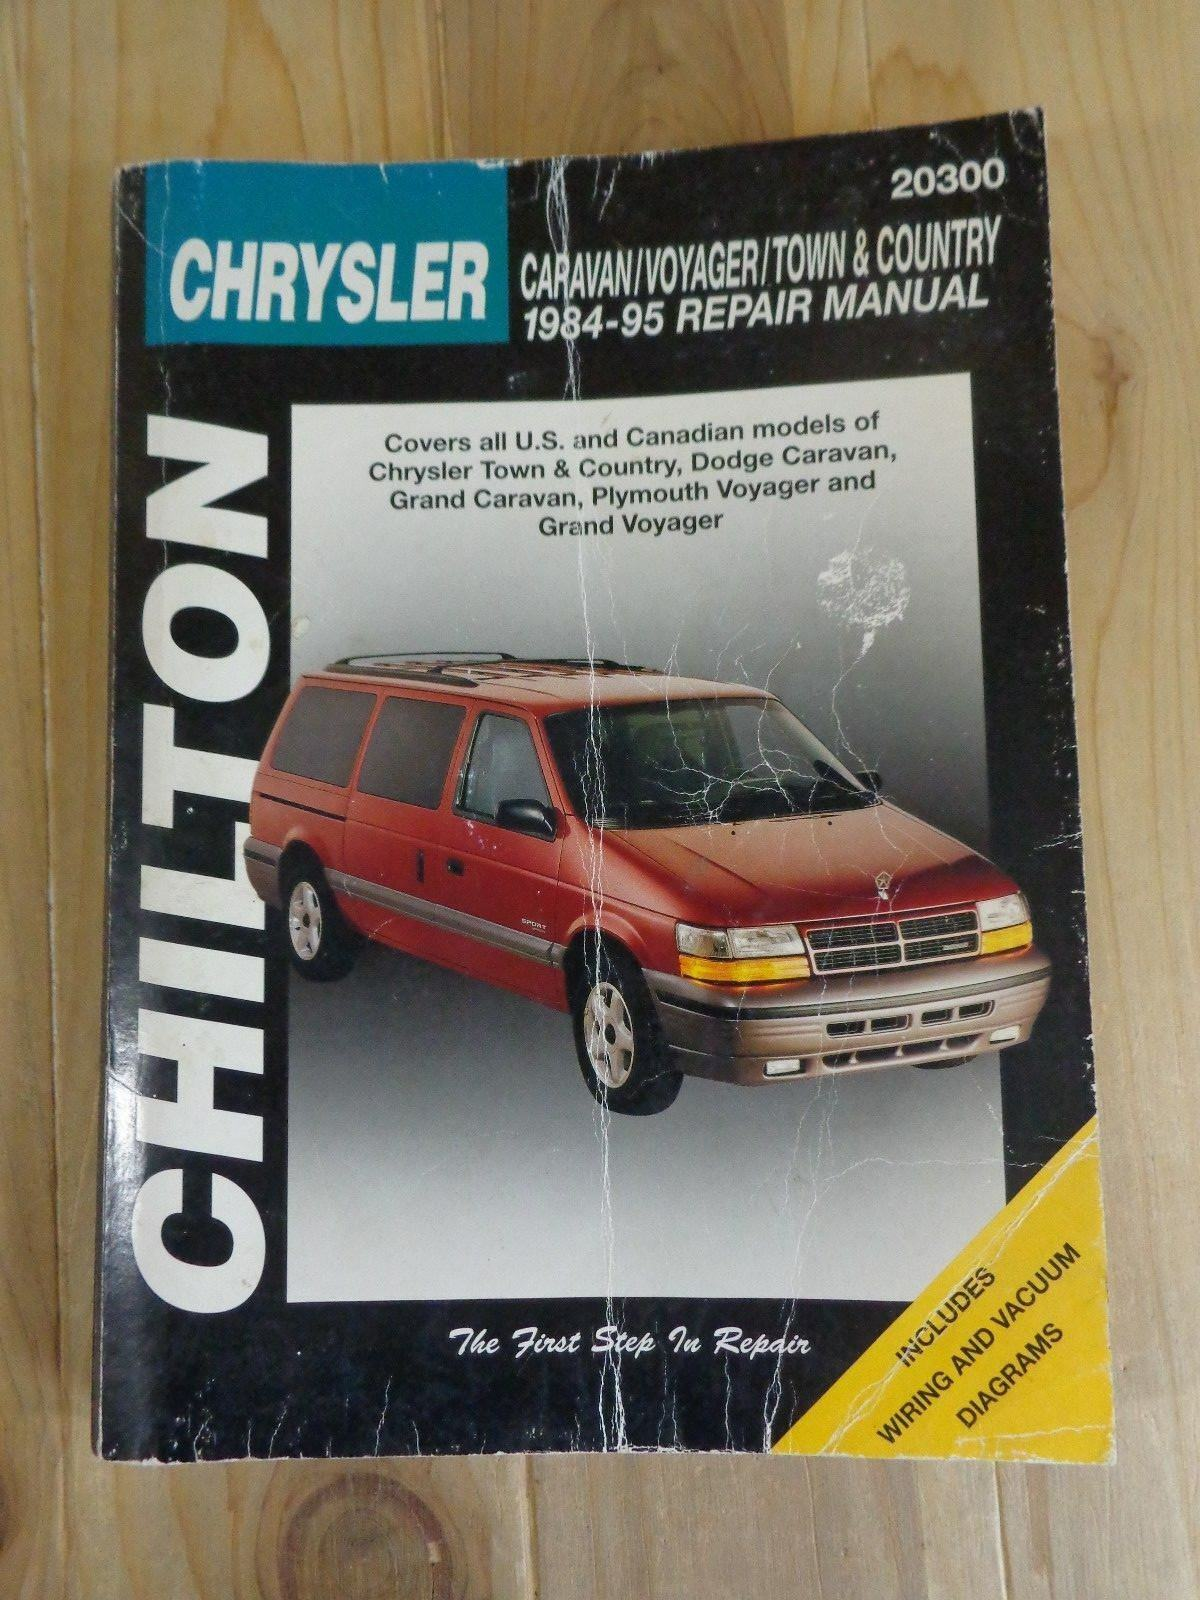 chilton repair manual 20300 chrysler caravan voyager town country rh ebay com Chrysler Grand Voyager Review New Chrysler Grand Voyager